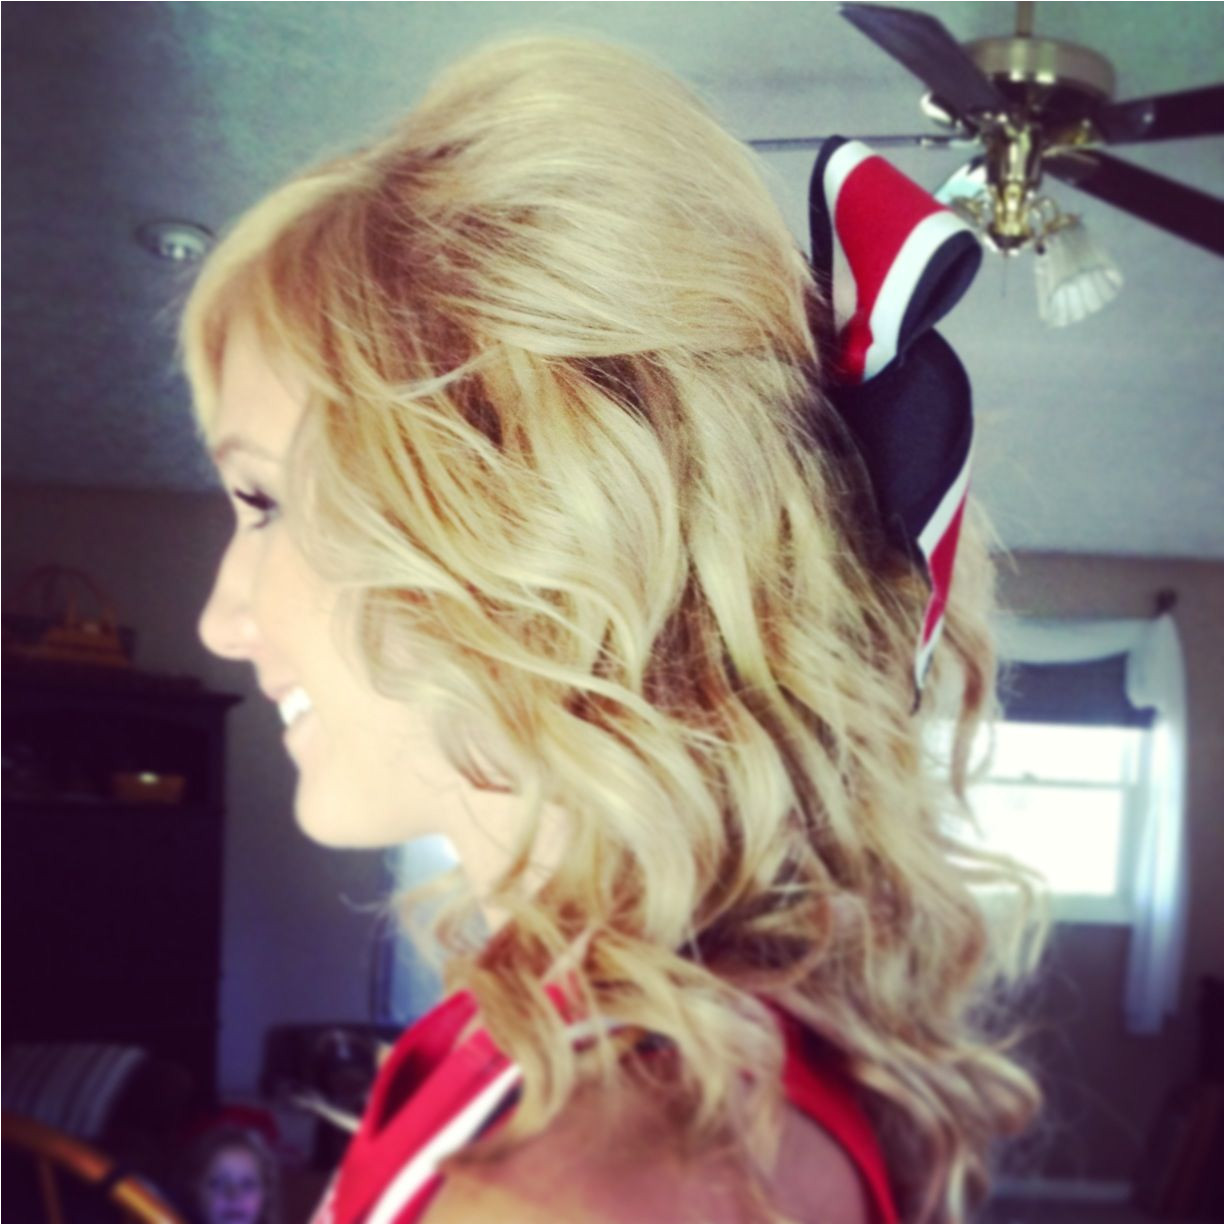 Cheer hair going to try this